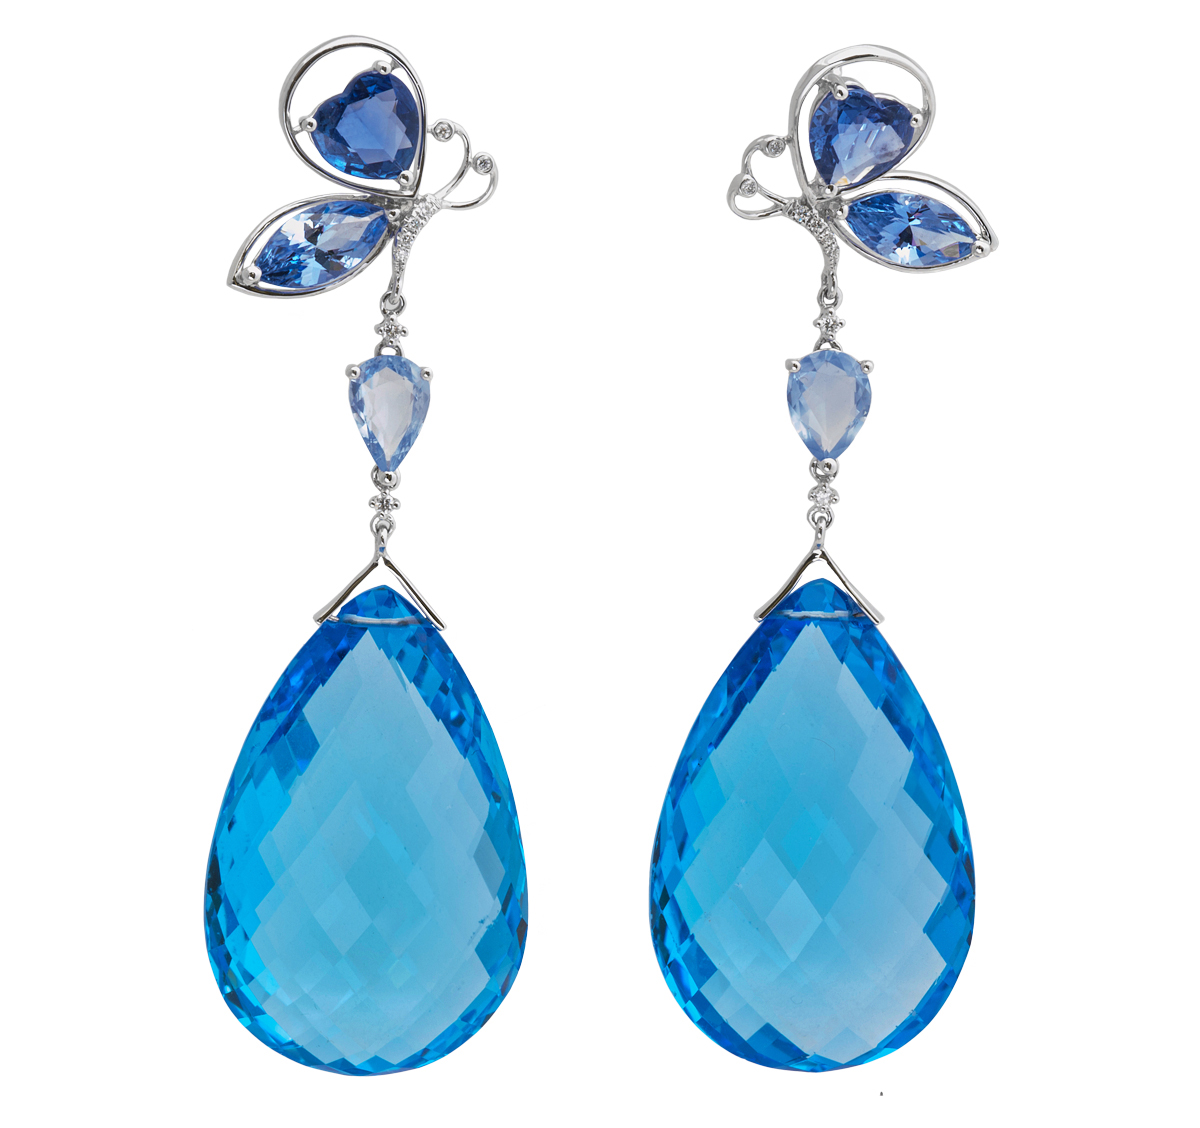 Jye Luxury collection blue topaz drop earrings